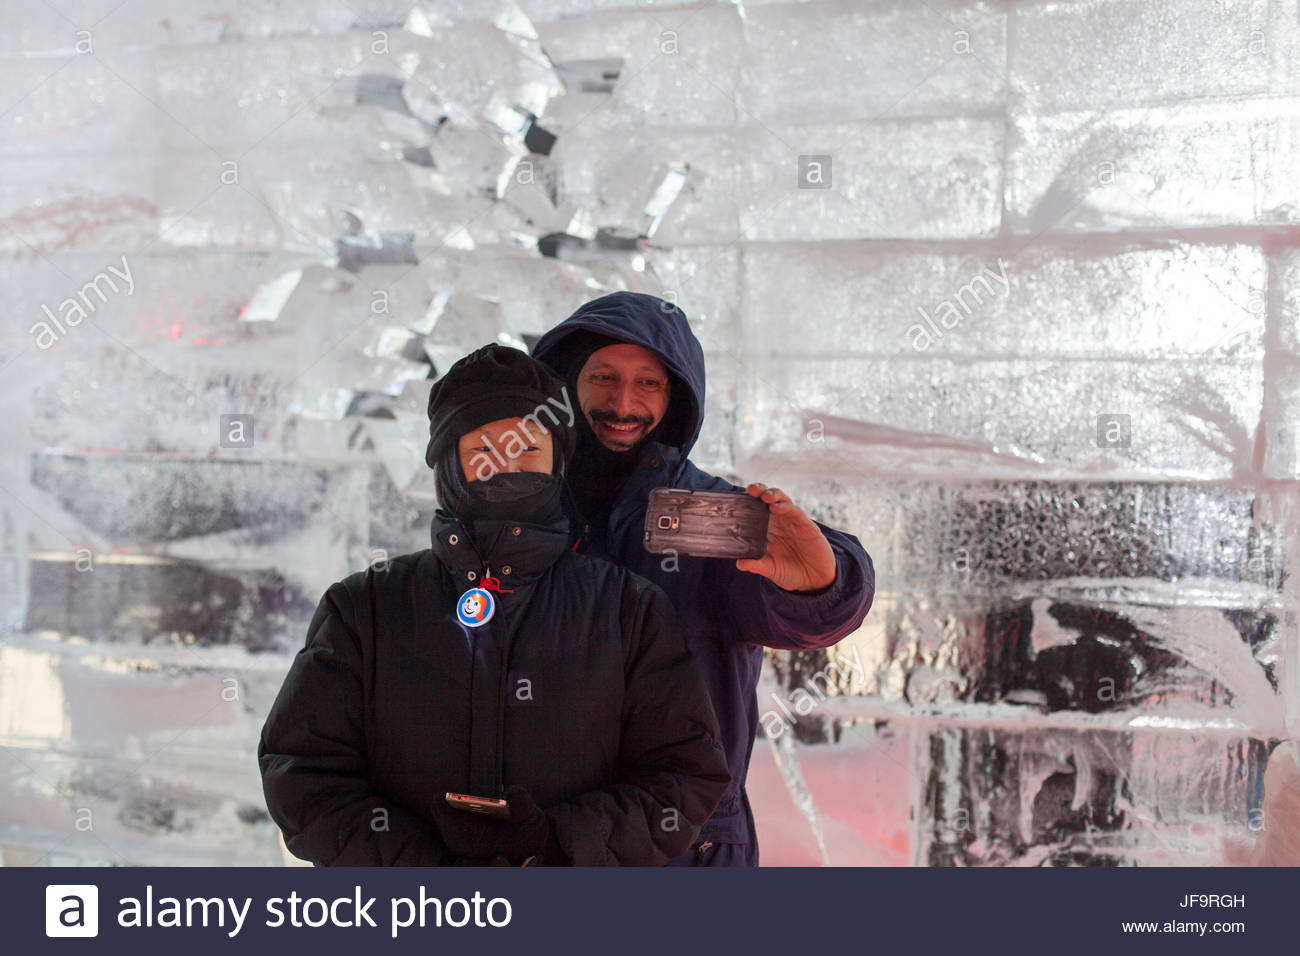 A married couple take a photo of themselves at a model of the ice hotel in Quebec City during Winter Carnival. - Stock Image